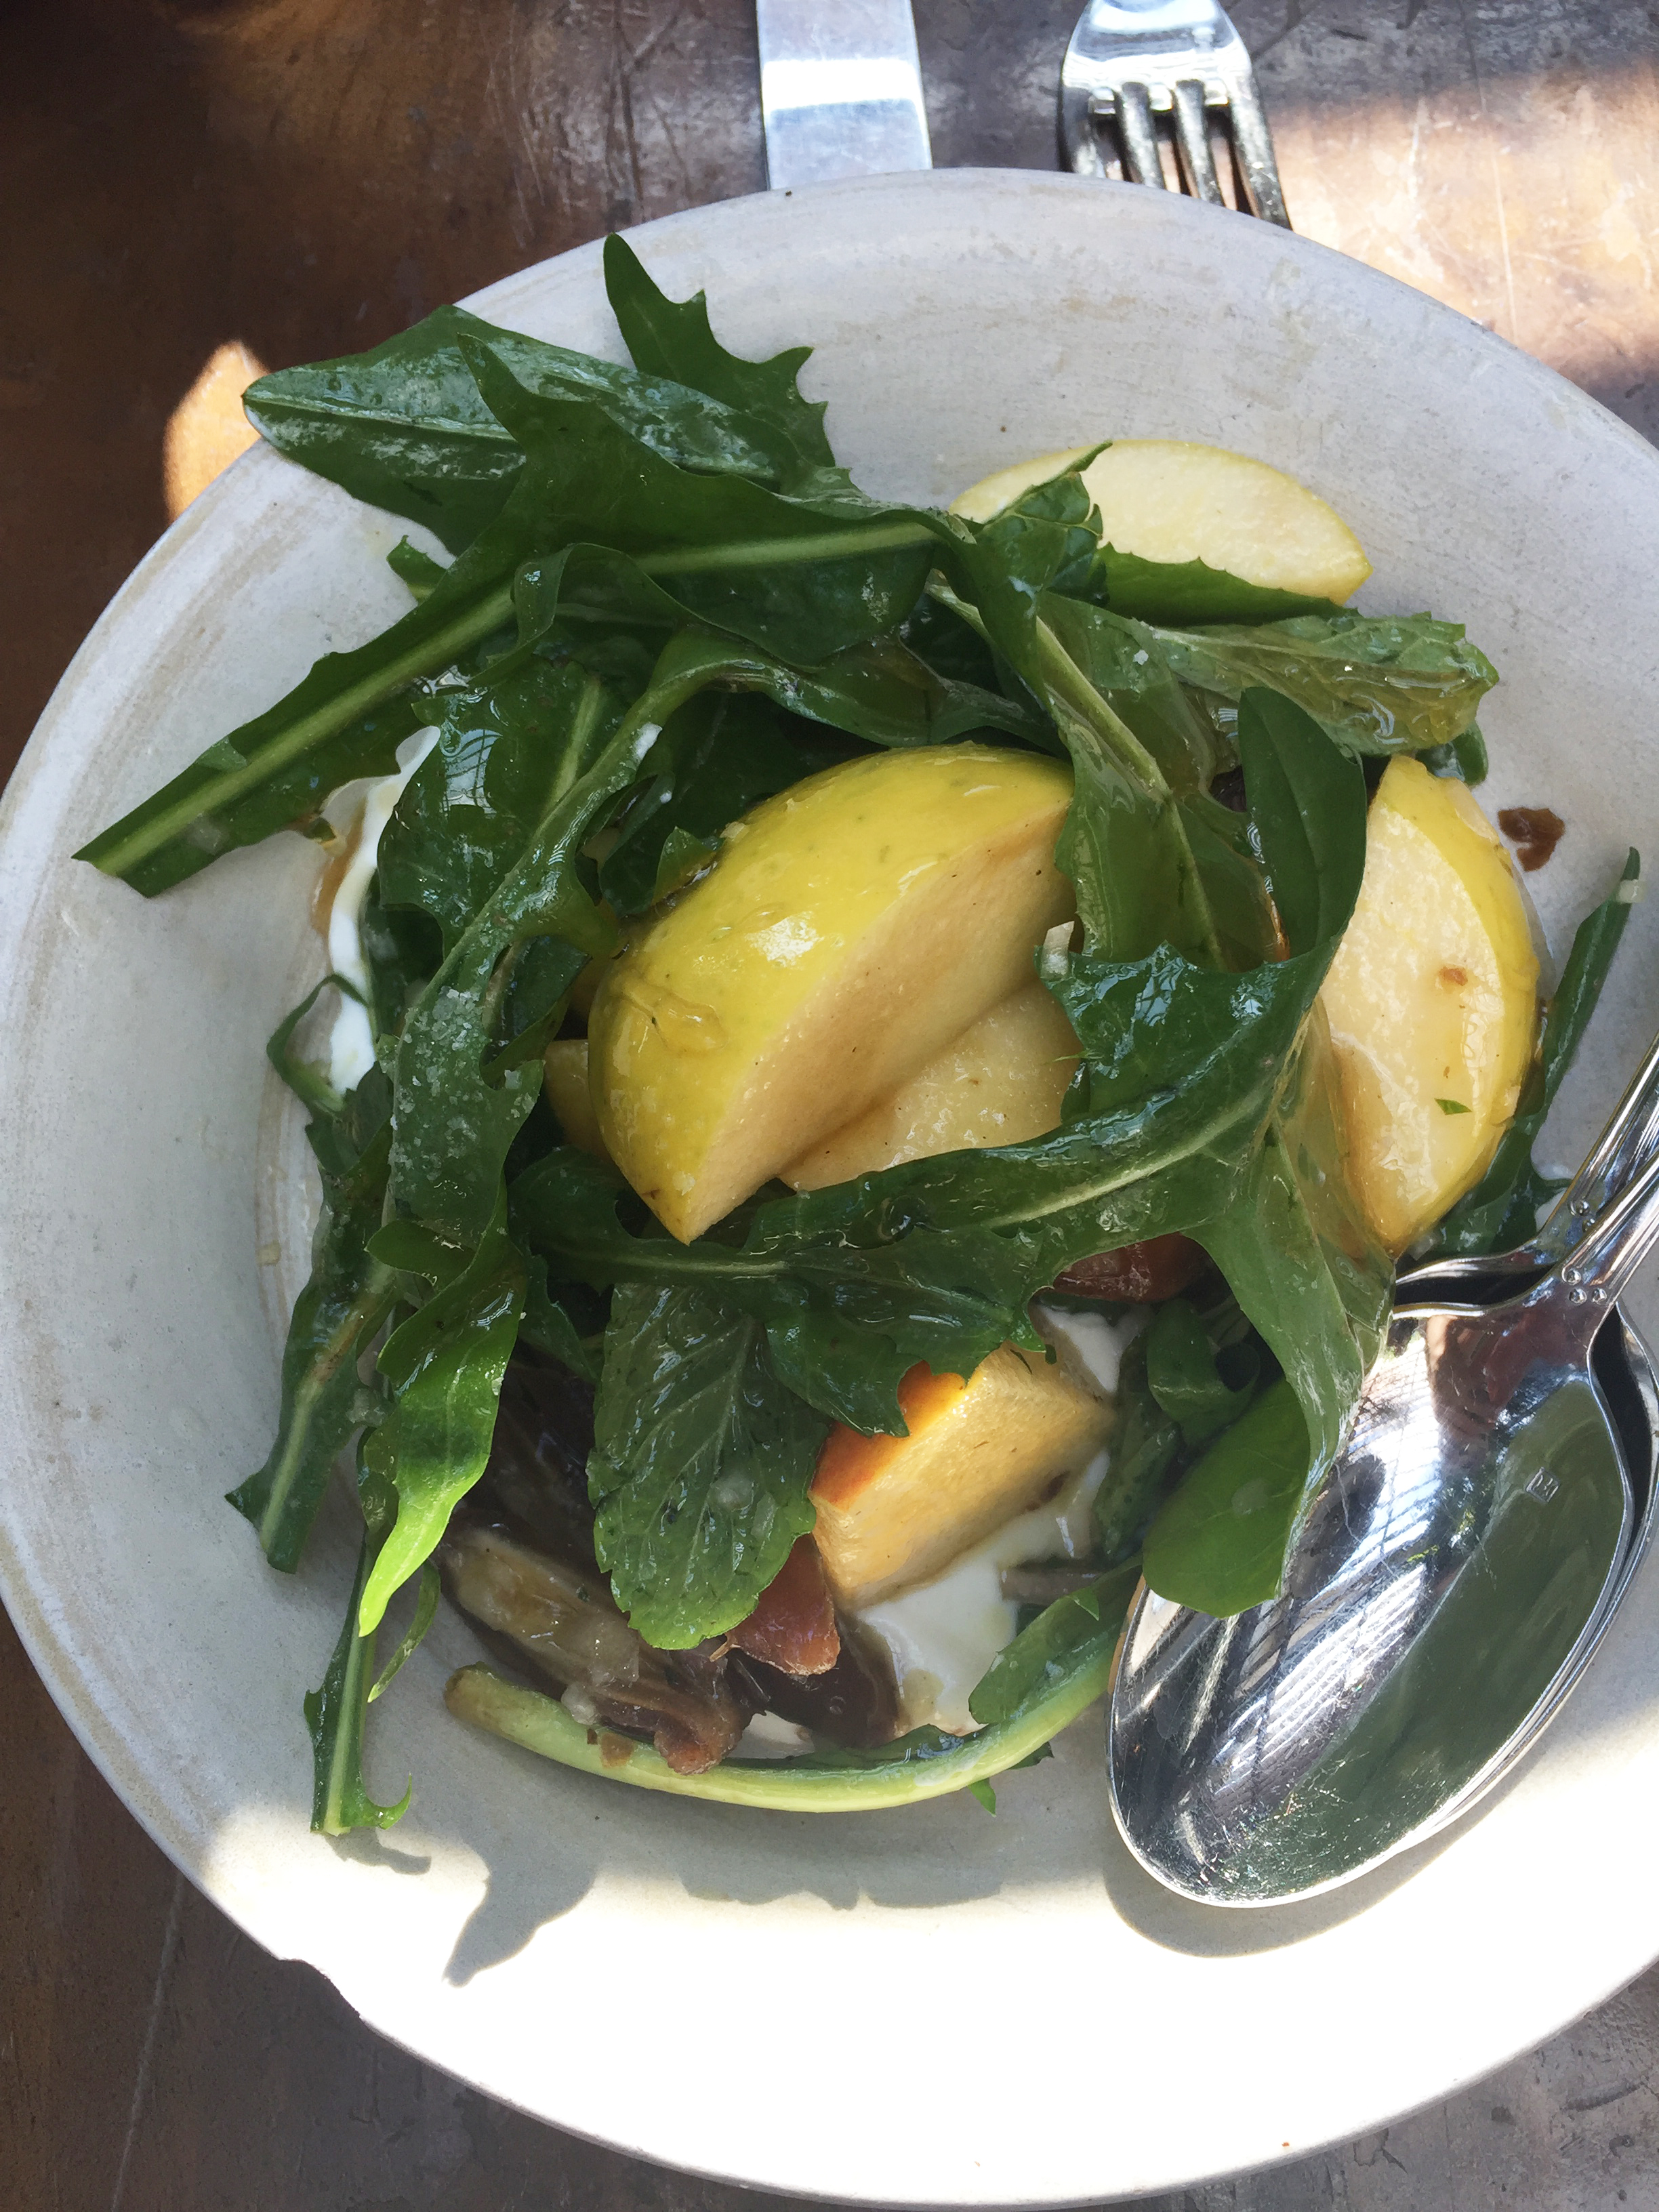 Apple, Deglet Noor date, yogurt, arugula, honey, and mint salad.